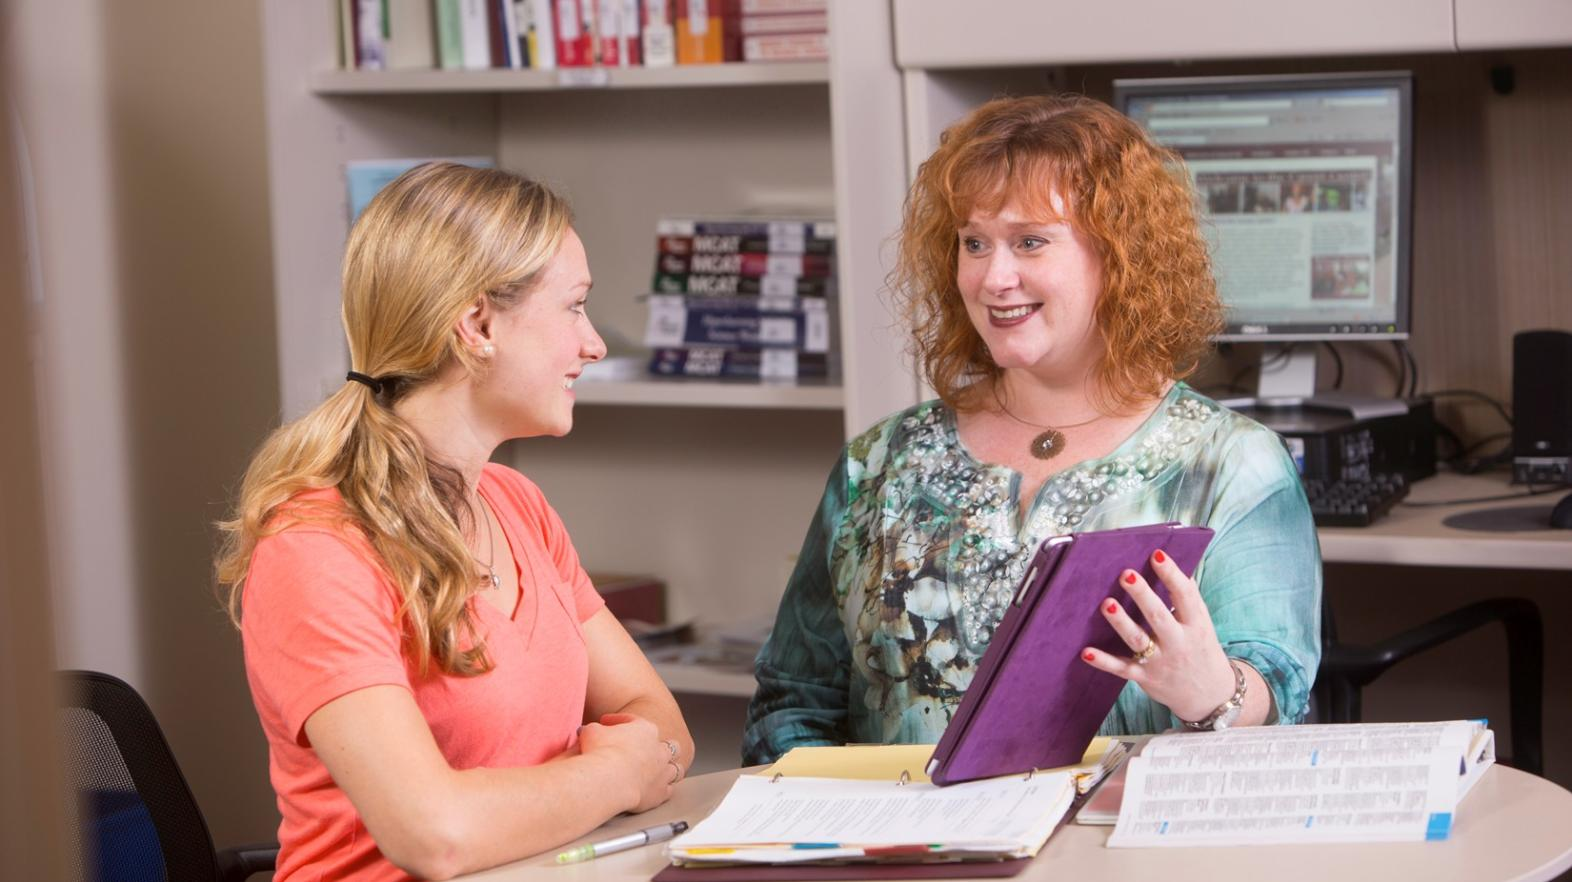 A career counselor works with a student at the Career Center at Springfield College